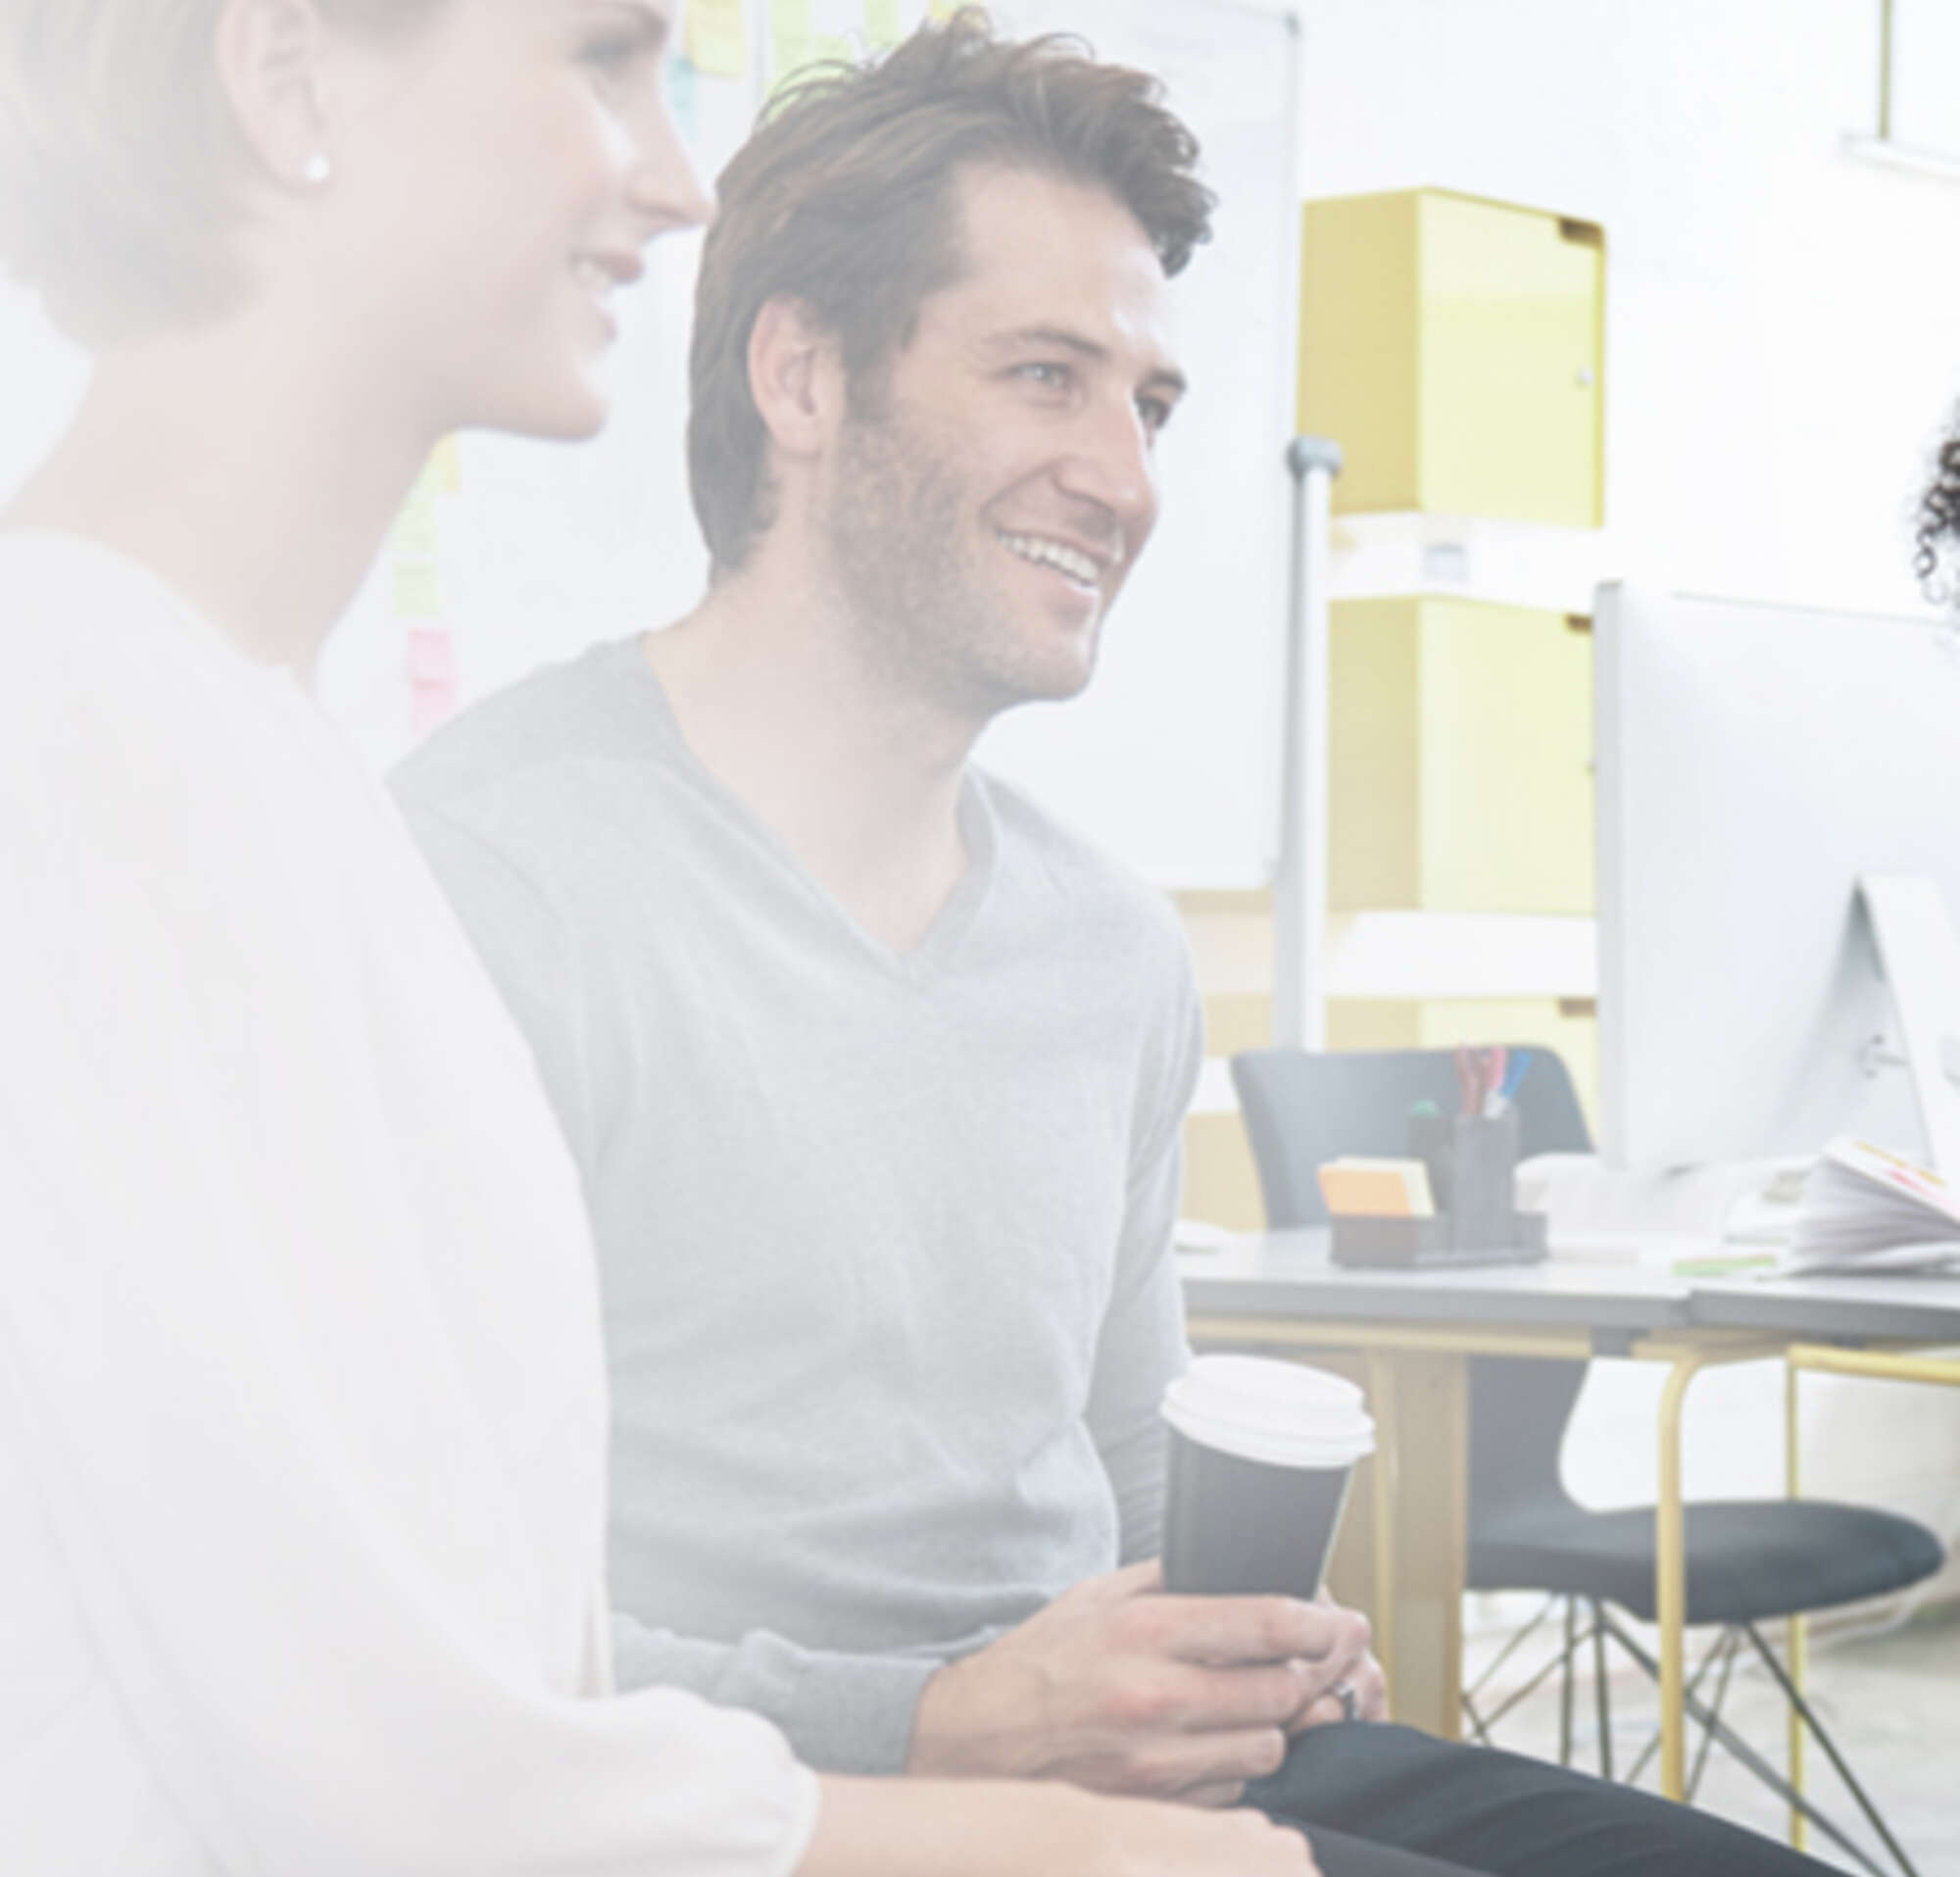 Two women and one man holding a coffee cup meet with a man in an office setting to discuss partner integrations.